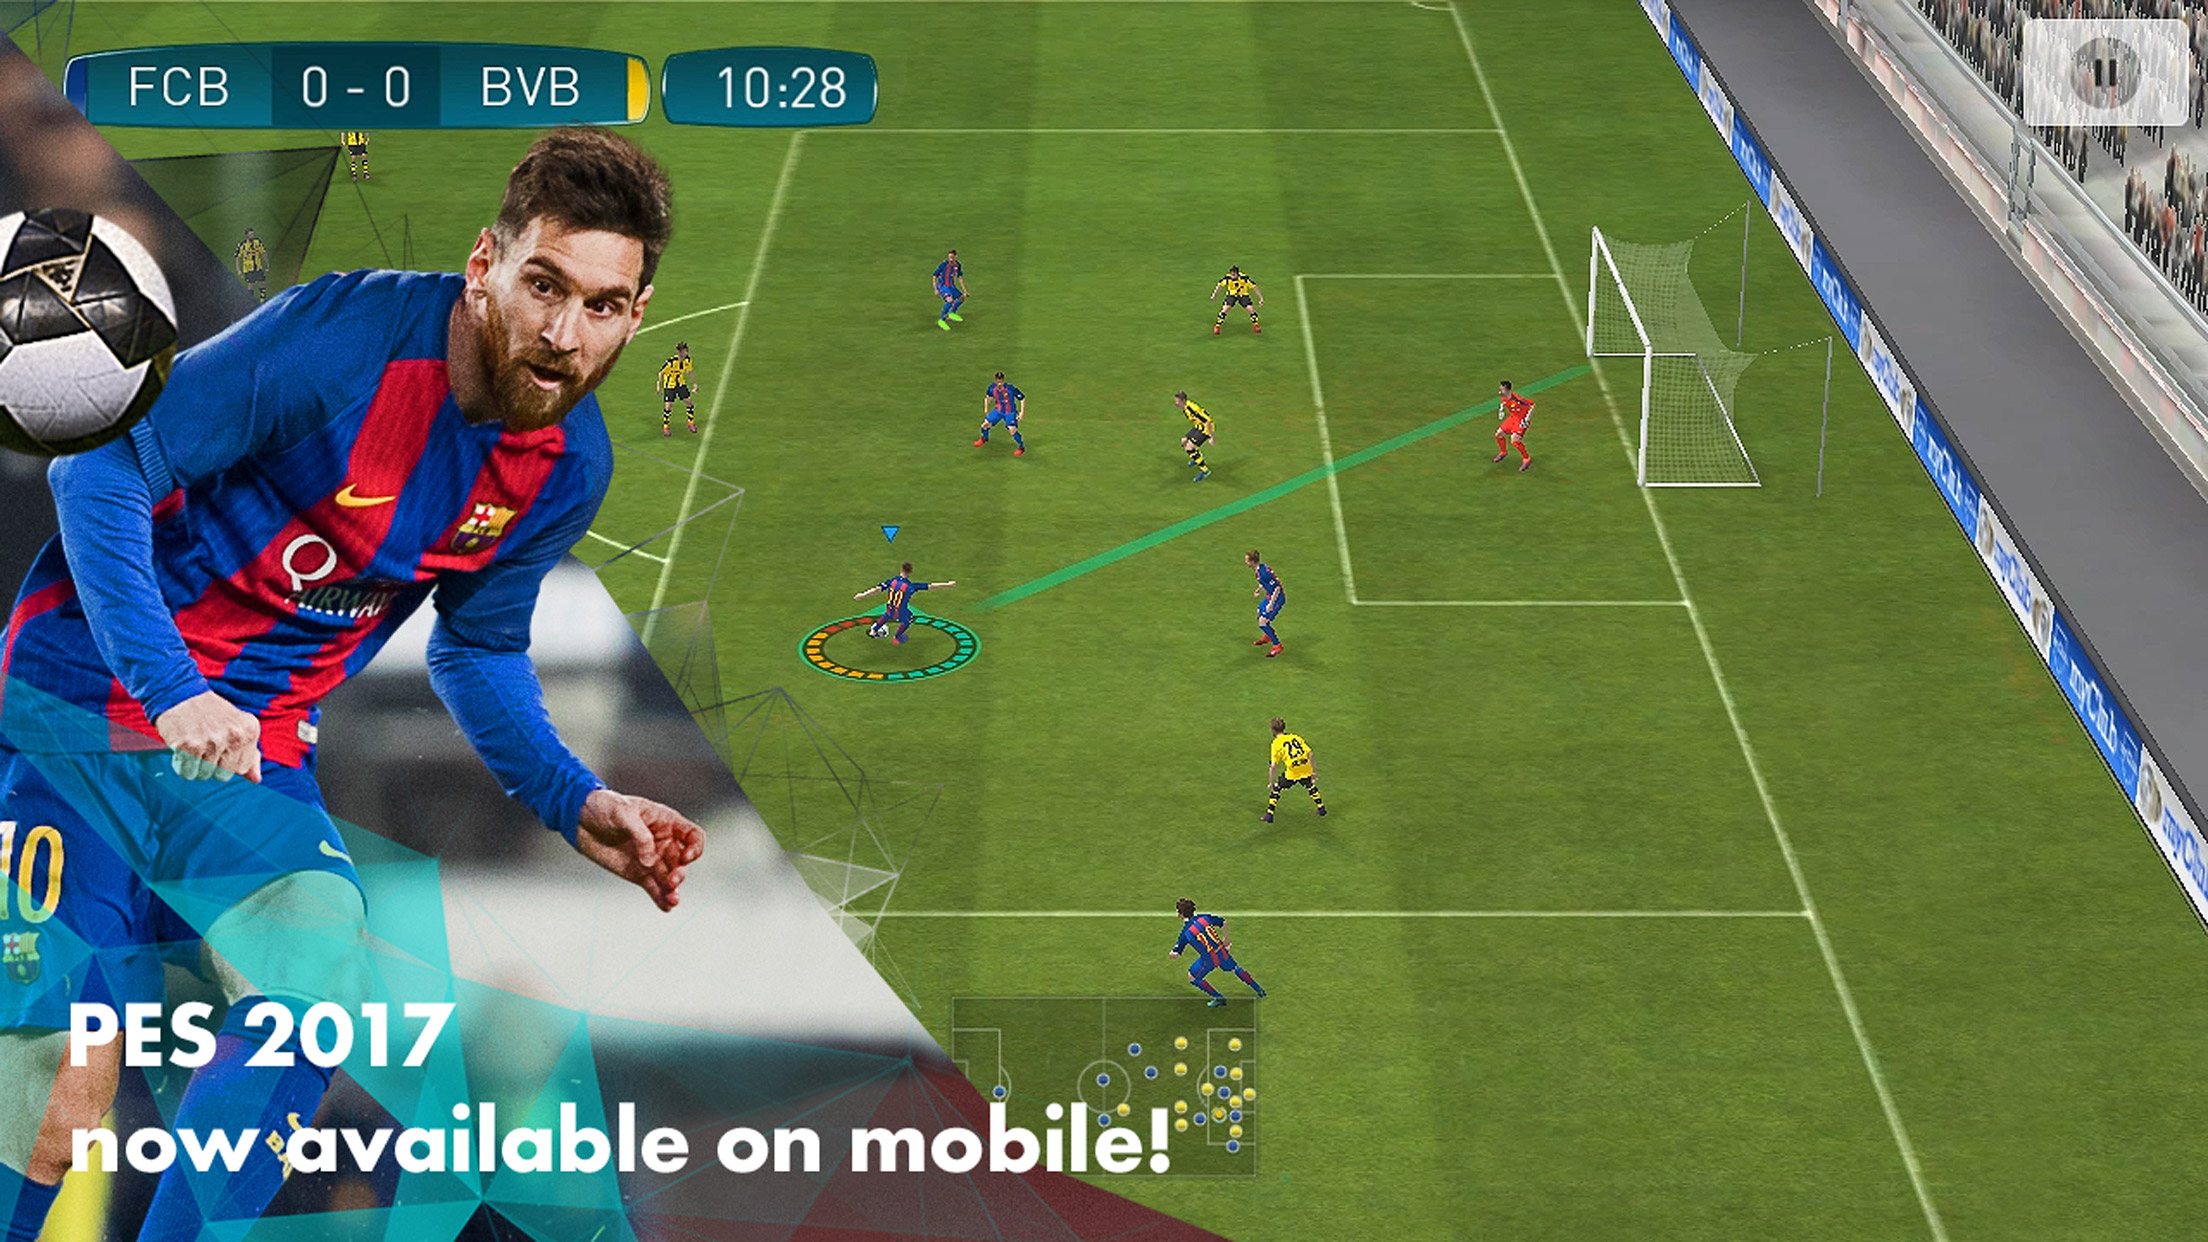 PES 2017 Mobile iOS and Android globally released in May 2017